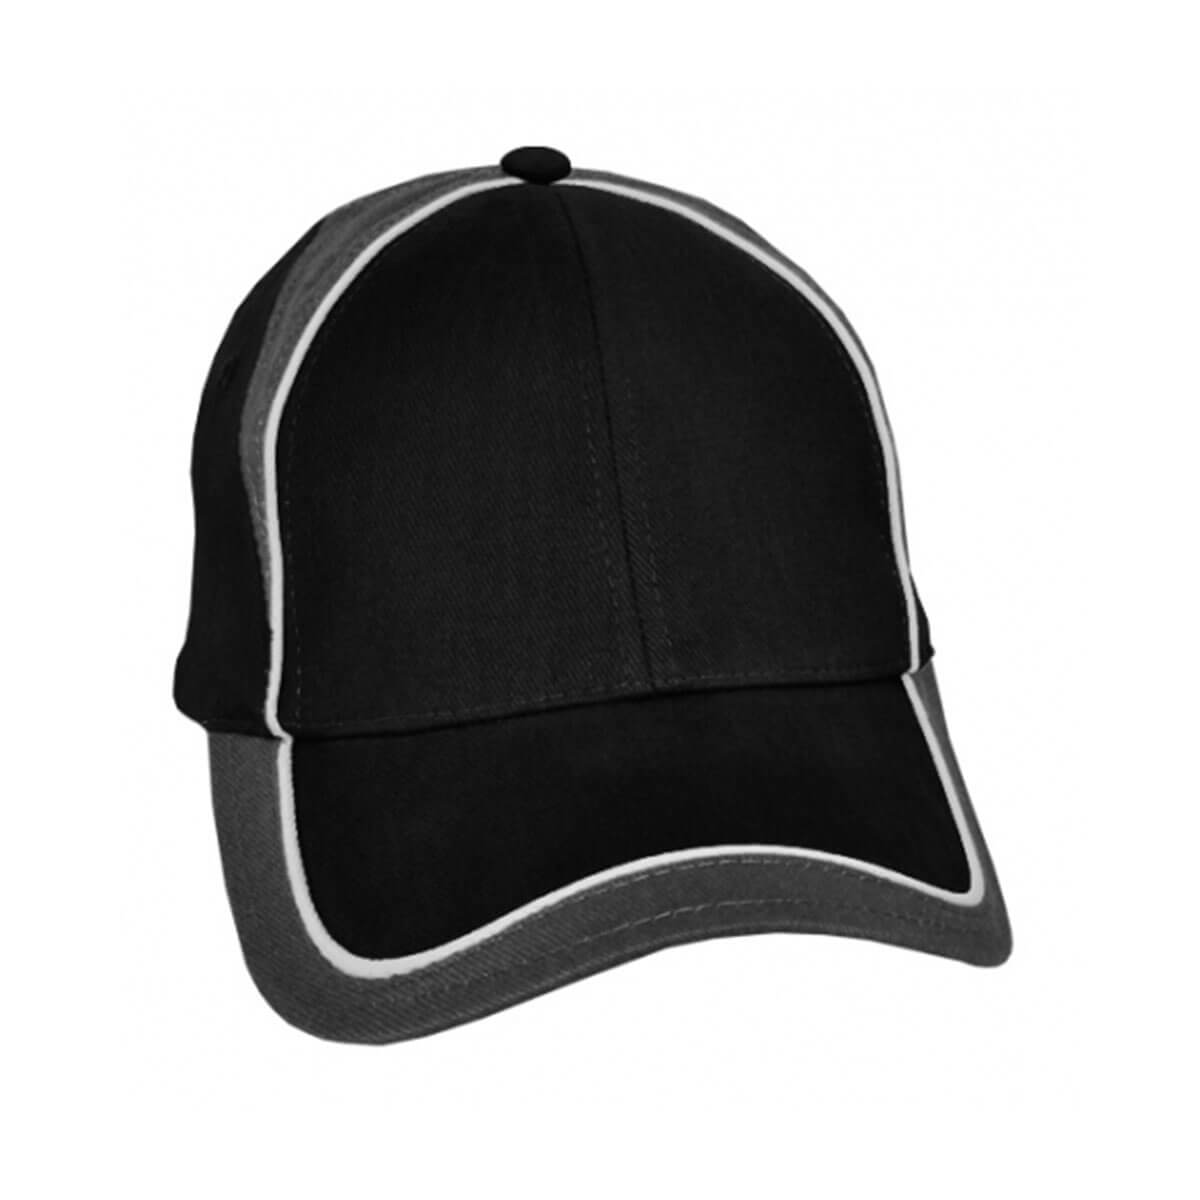 Wickham Cap-Black / White / Charcoal